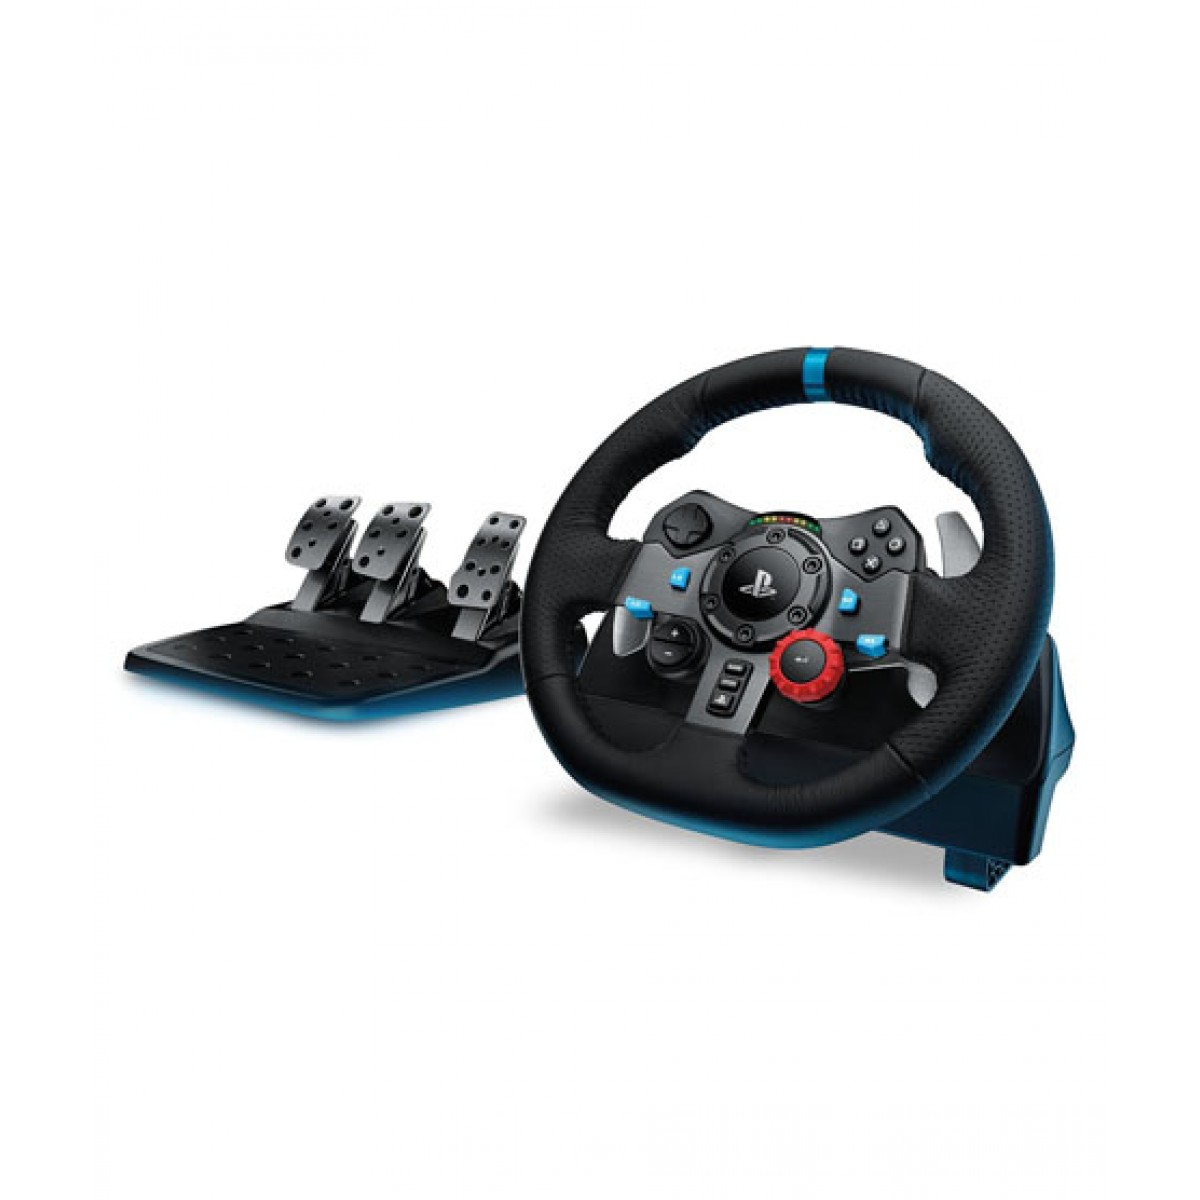 bdcdf0e7b2a Logitech G29 Driving Force (941-000143) Price in Pakistan | Buy Logitech  G29 Driving Force Race Steering Wheel (941-000143) | iShopping.pk